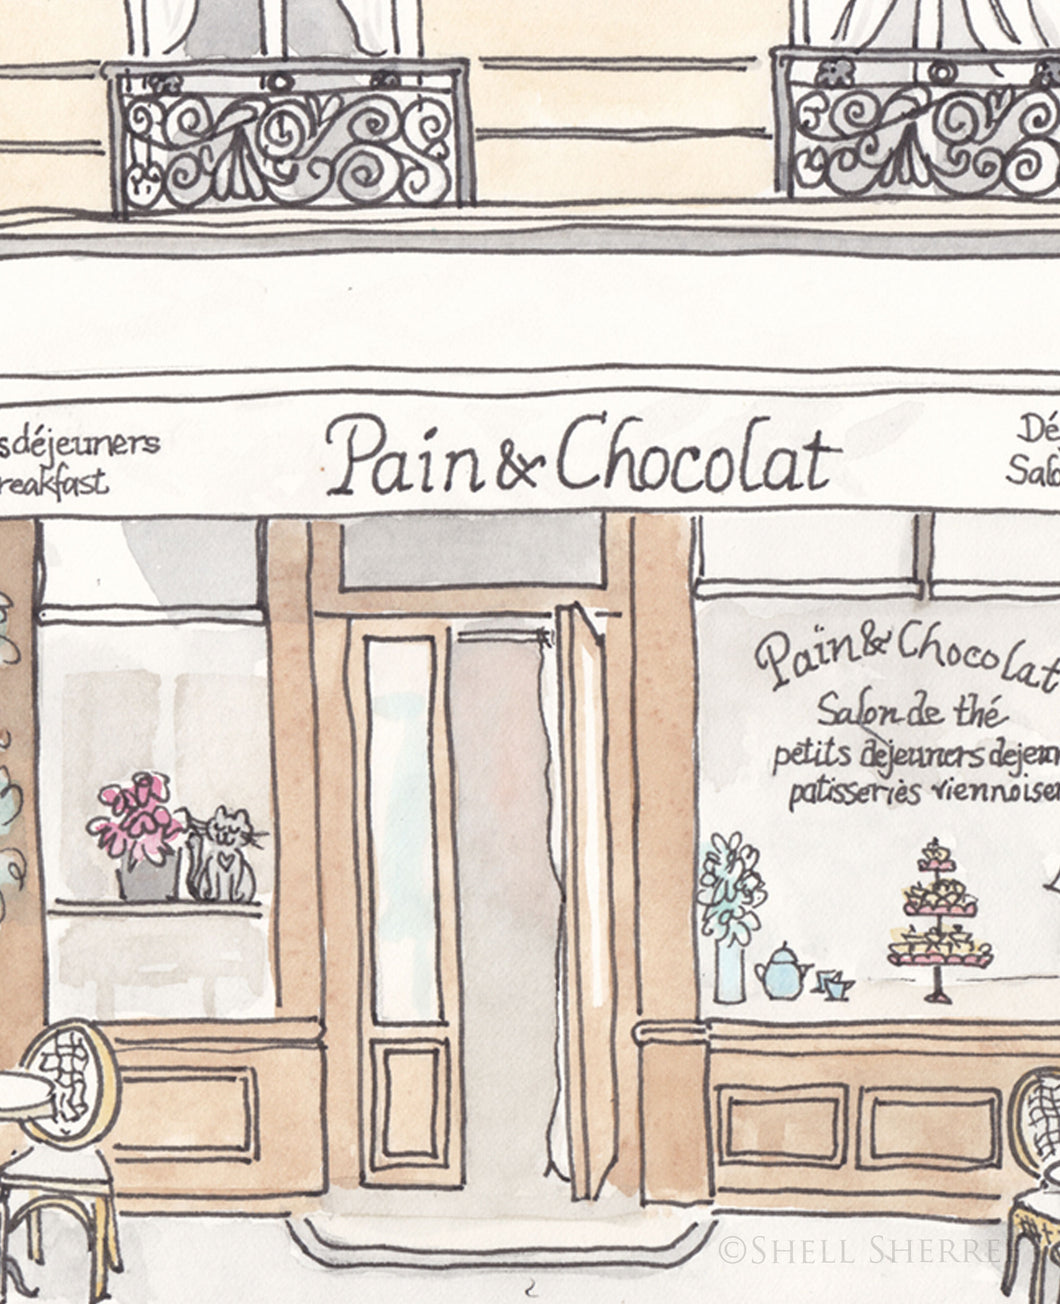 french cafe art pain et chocolat by shell sherree